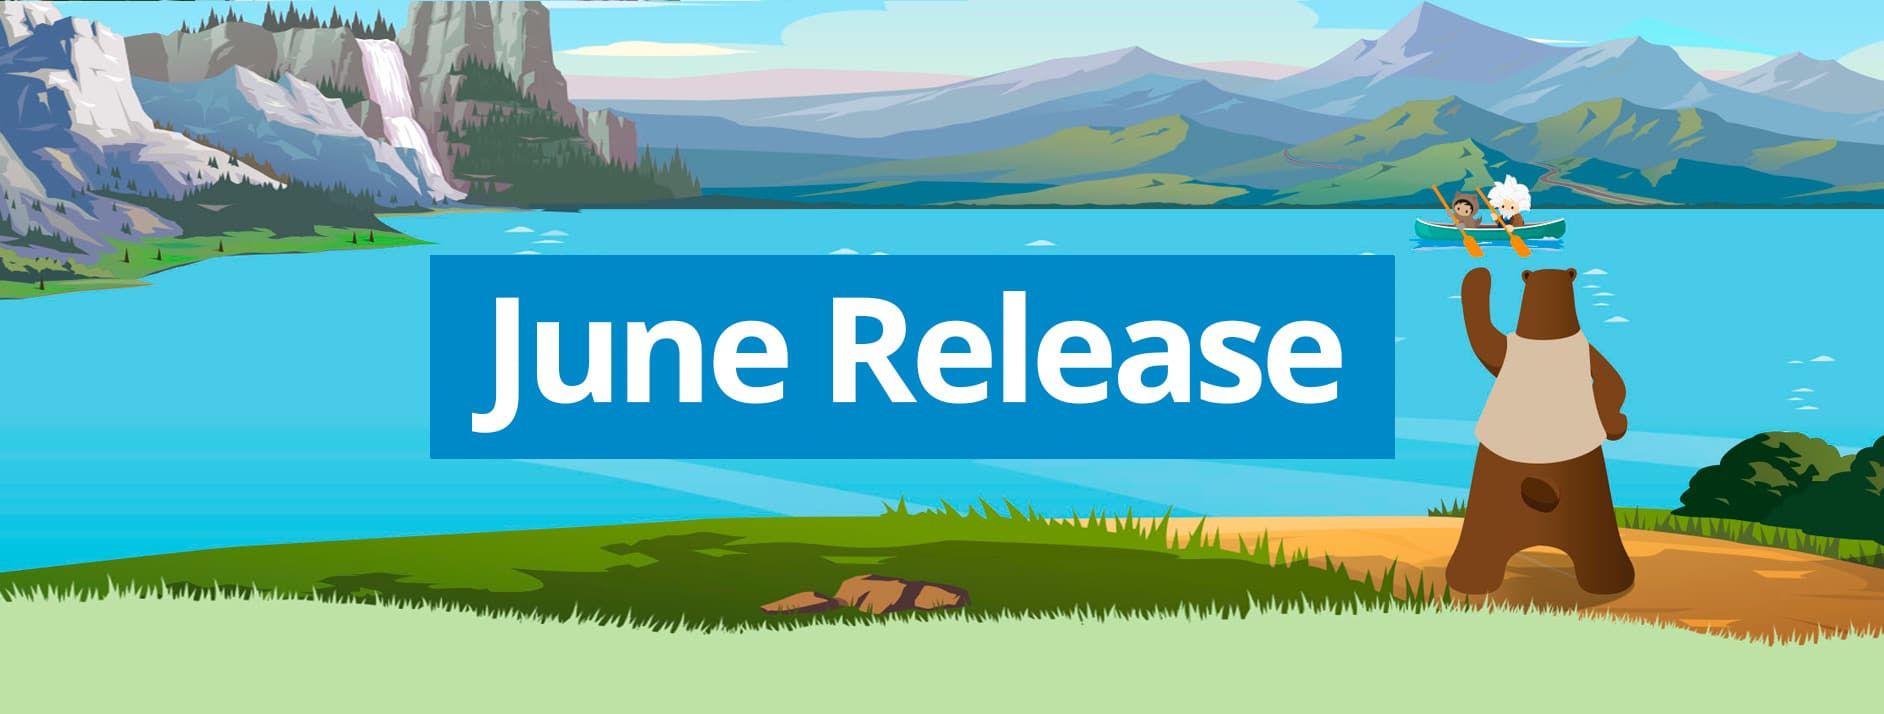 Release Nétive VMS june